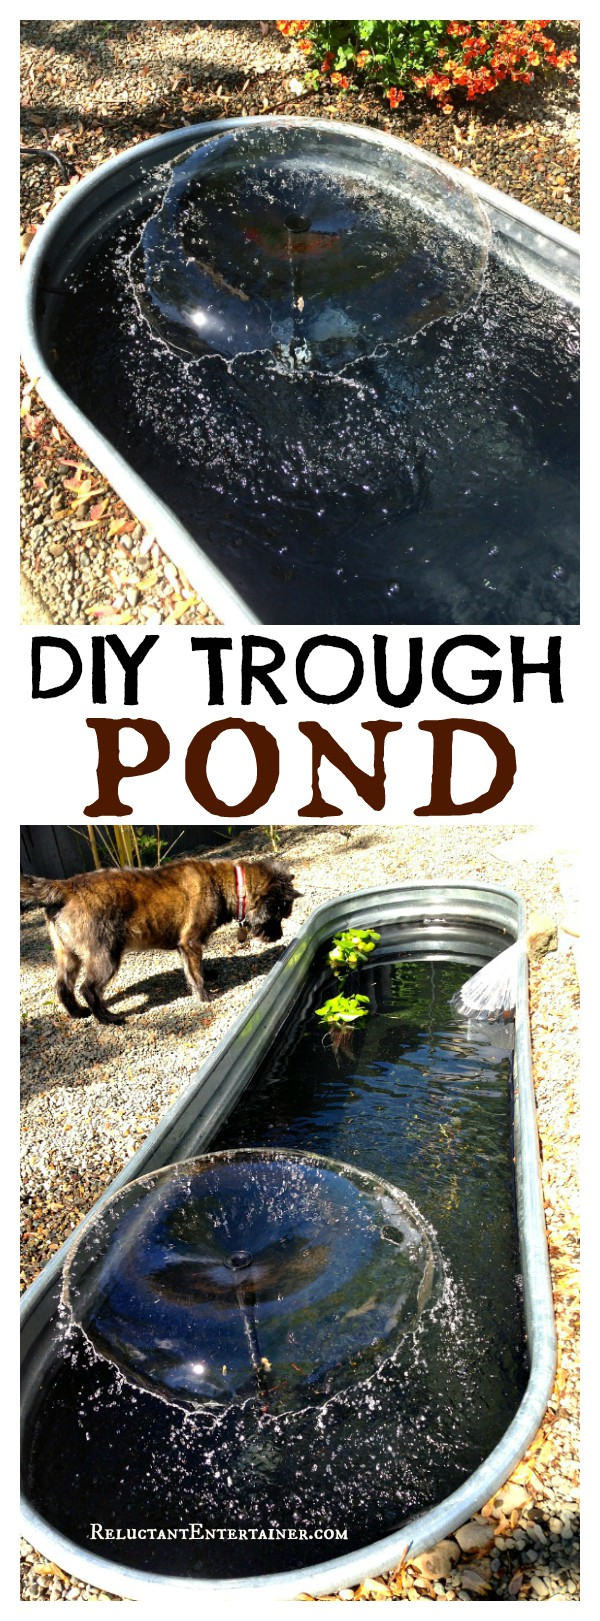 DIY Trough Pond at Reluctant Entertainer